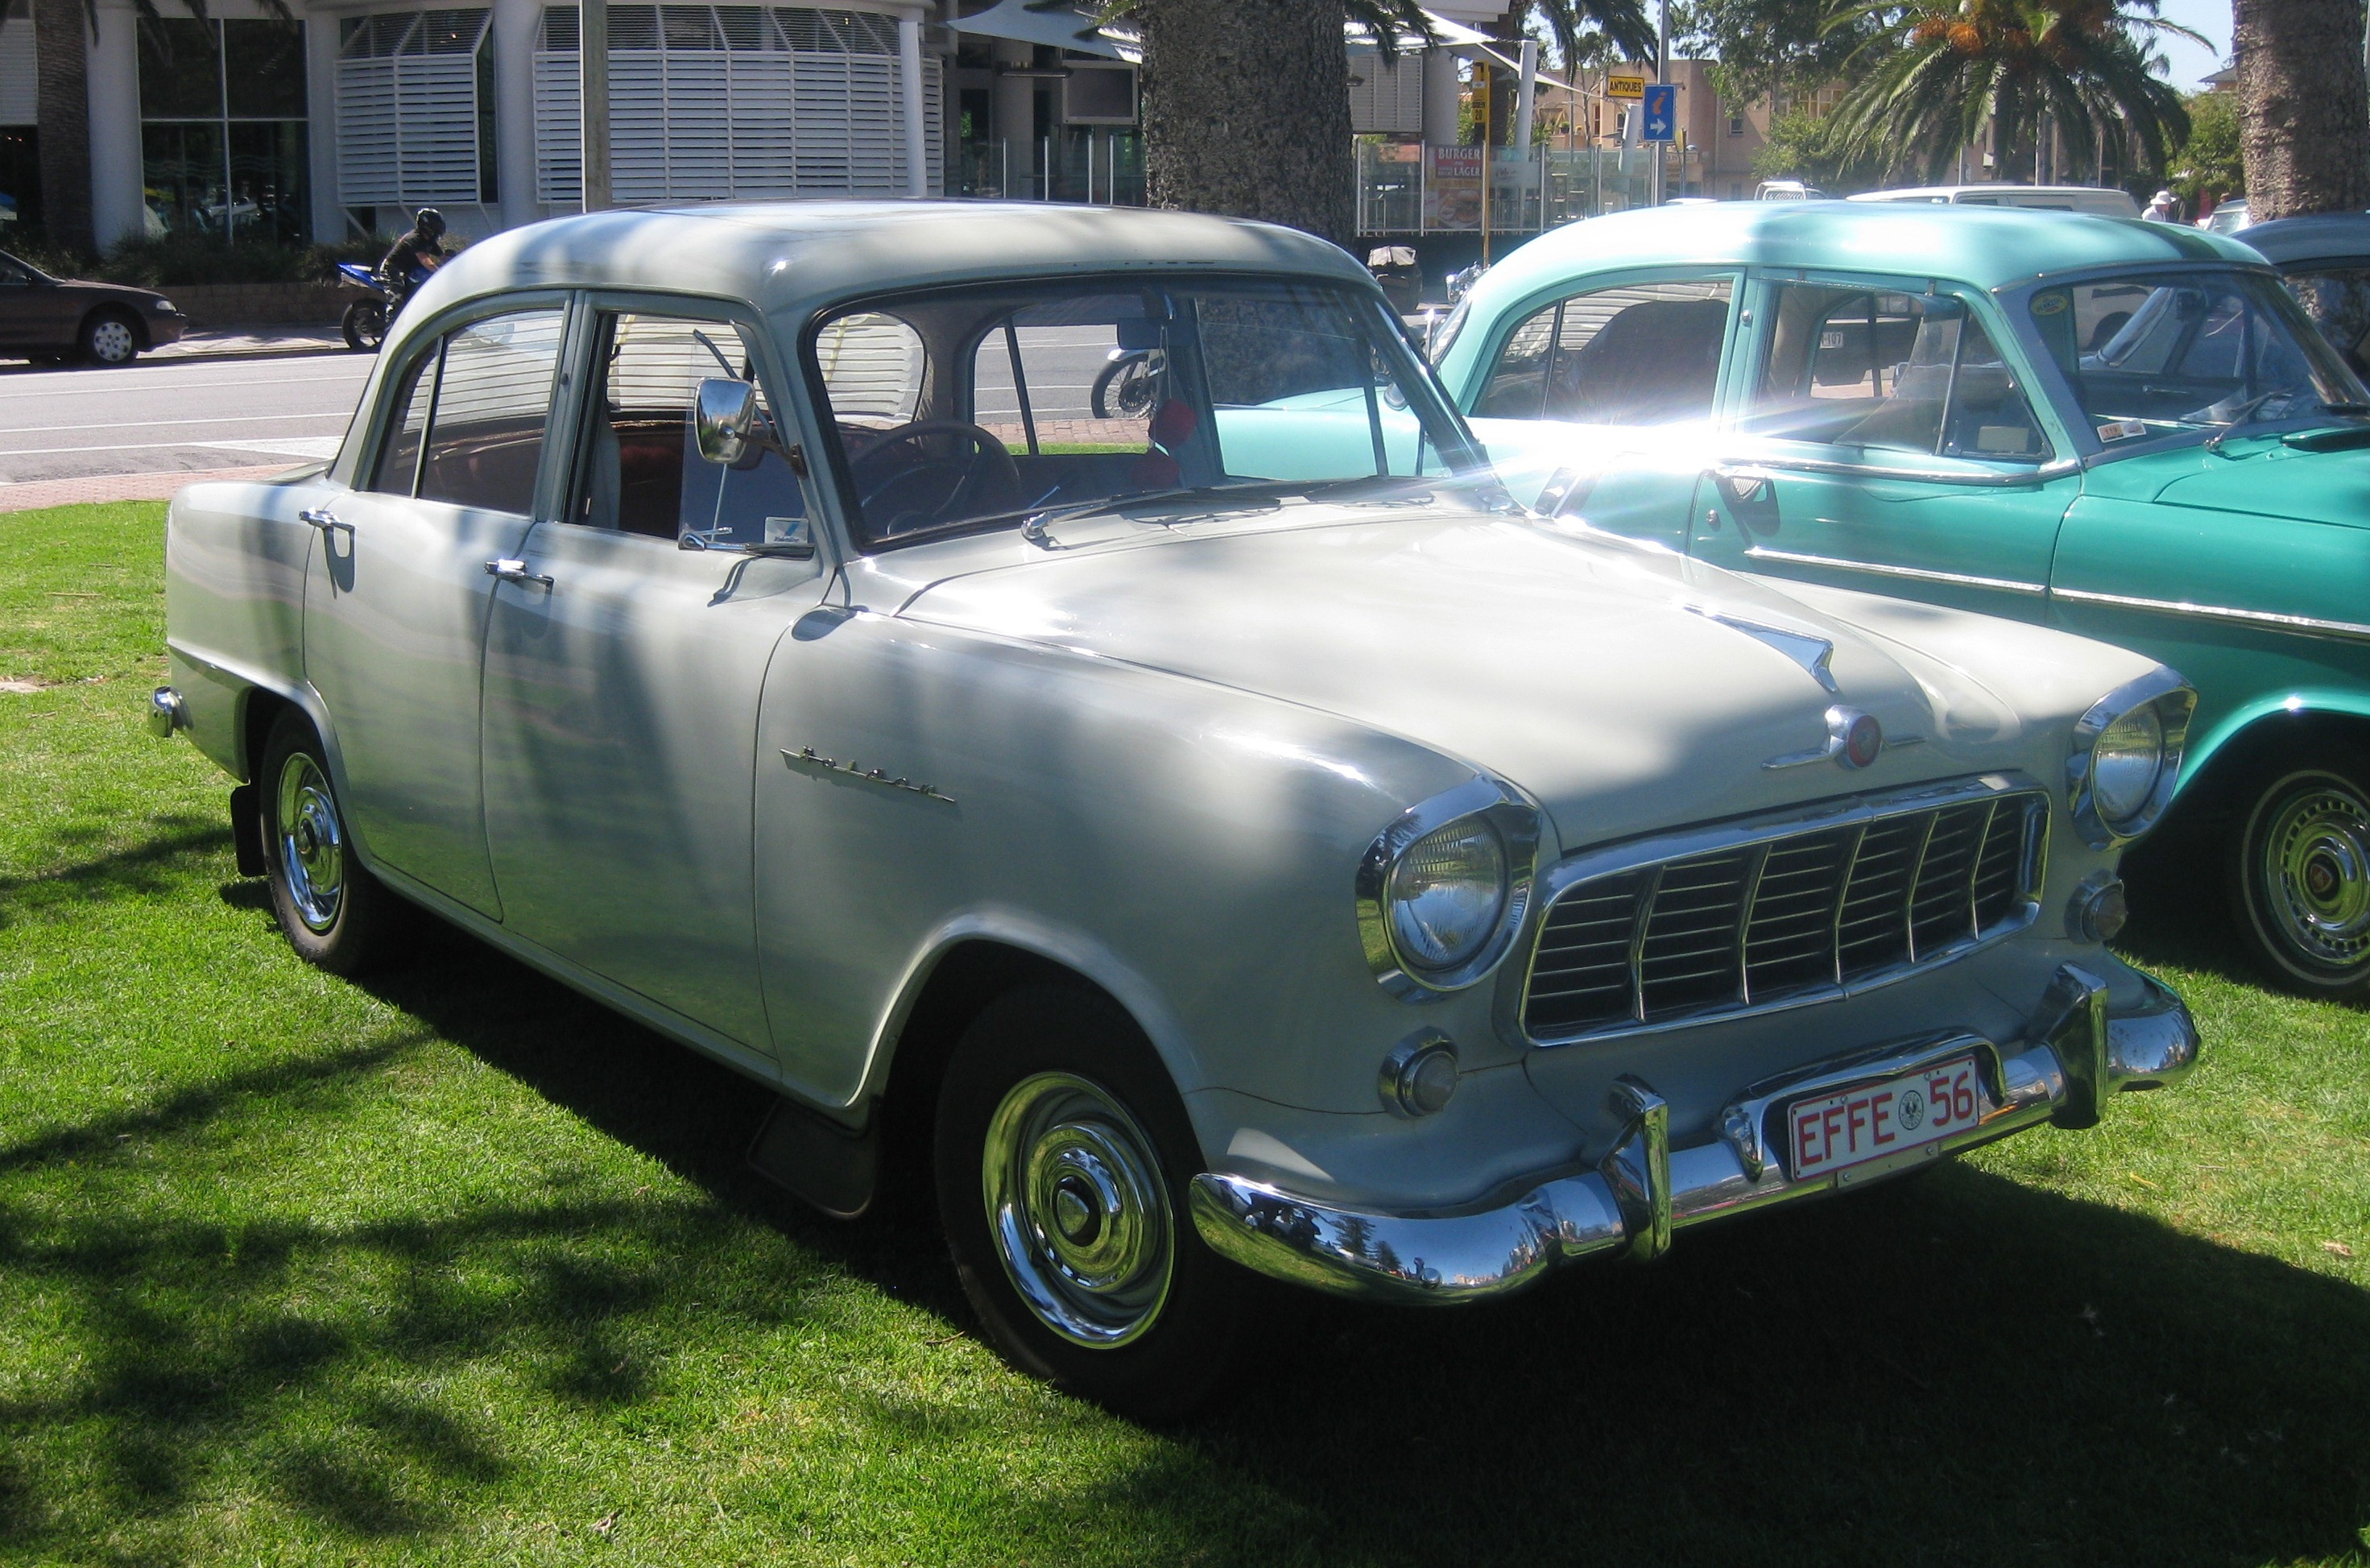 File Holden Fe Standard Sedan 1956 Jpg Wikimedia Commons